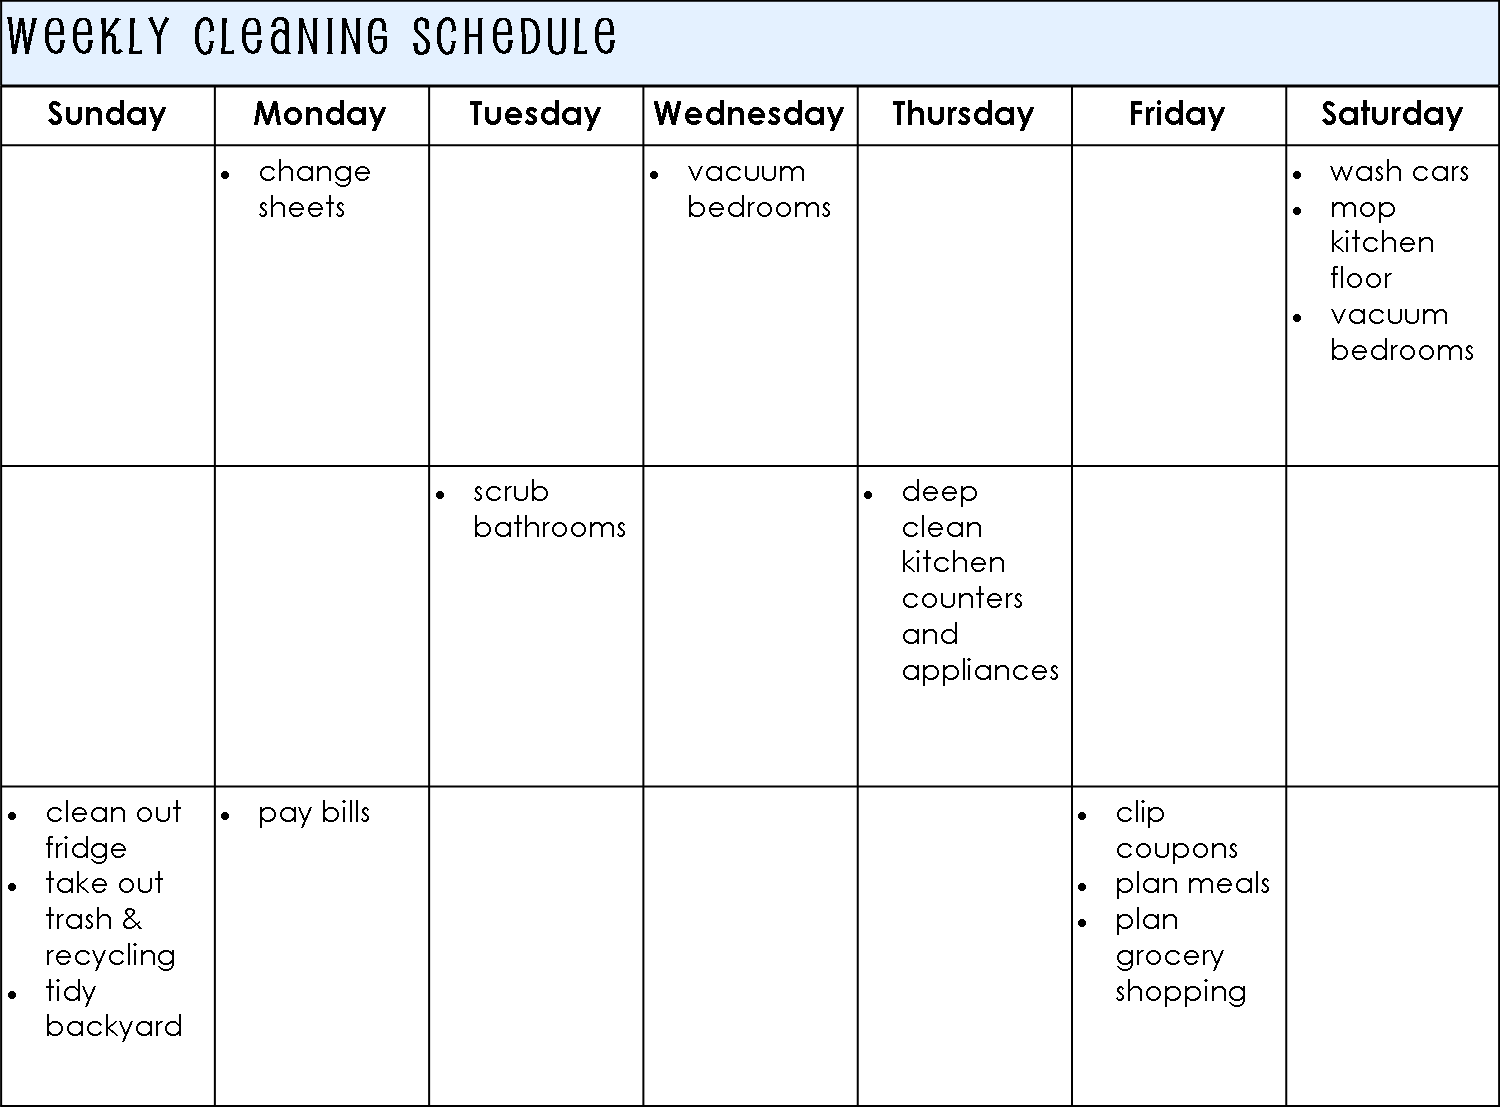 Weekly Based Cleaning Schedule Template For Personal : V m d.com